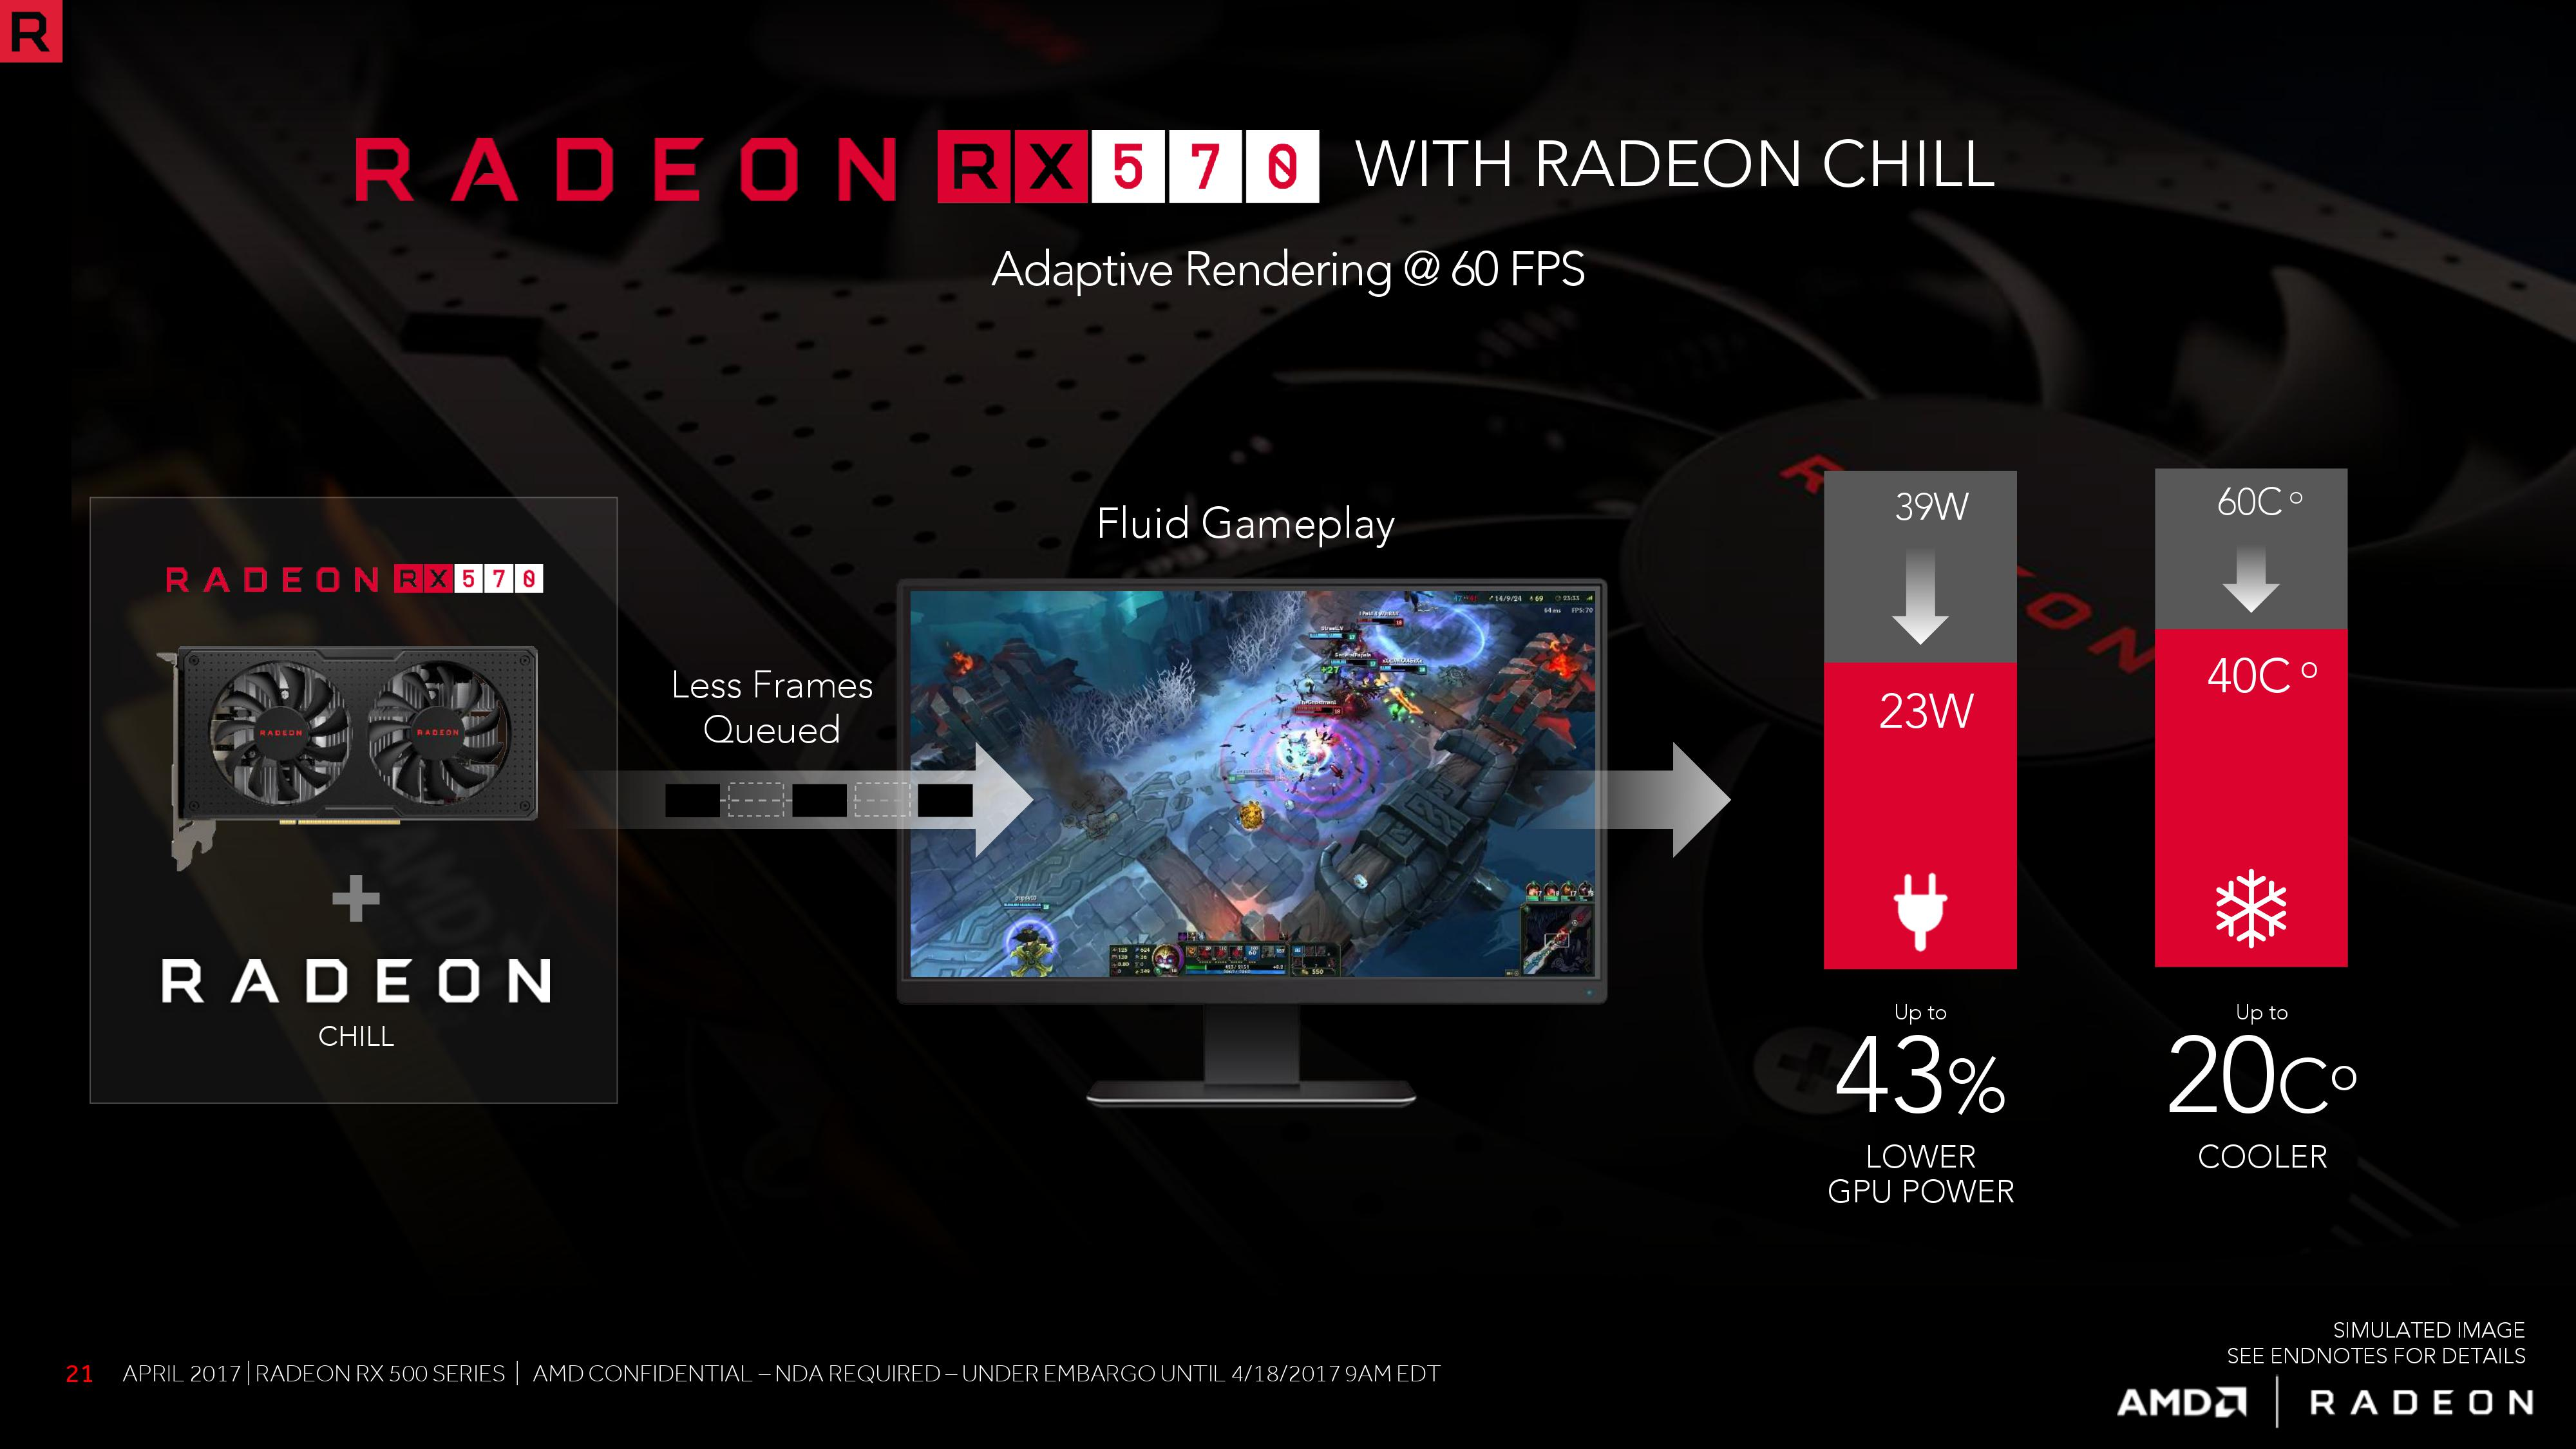 AMD Radeon RX 500 Series Launched - RX 580 and RX 570 Review Roundup